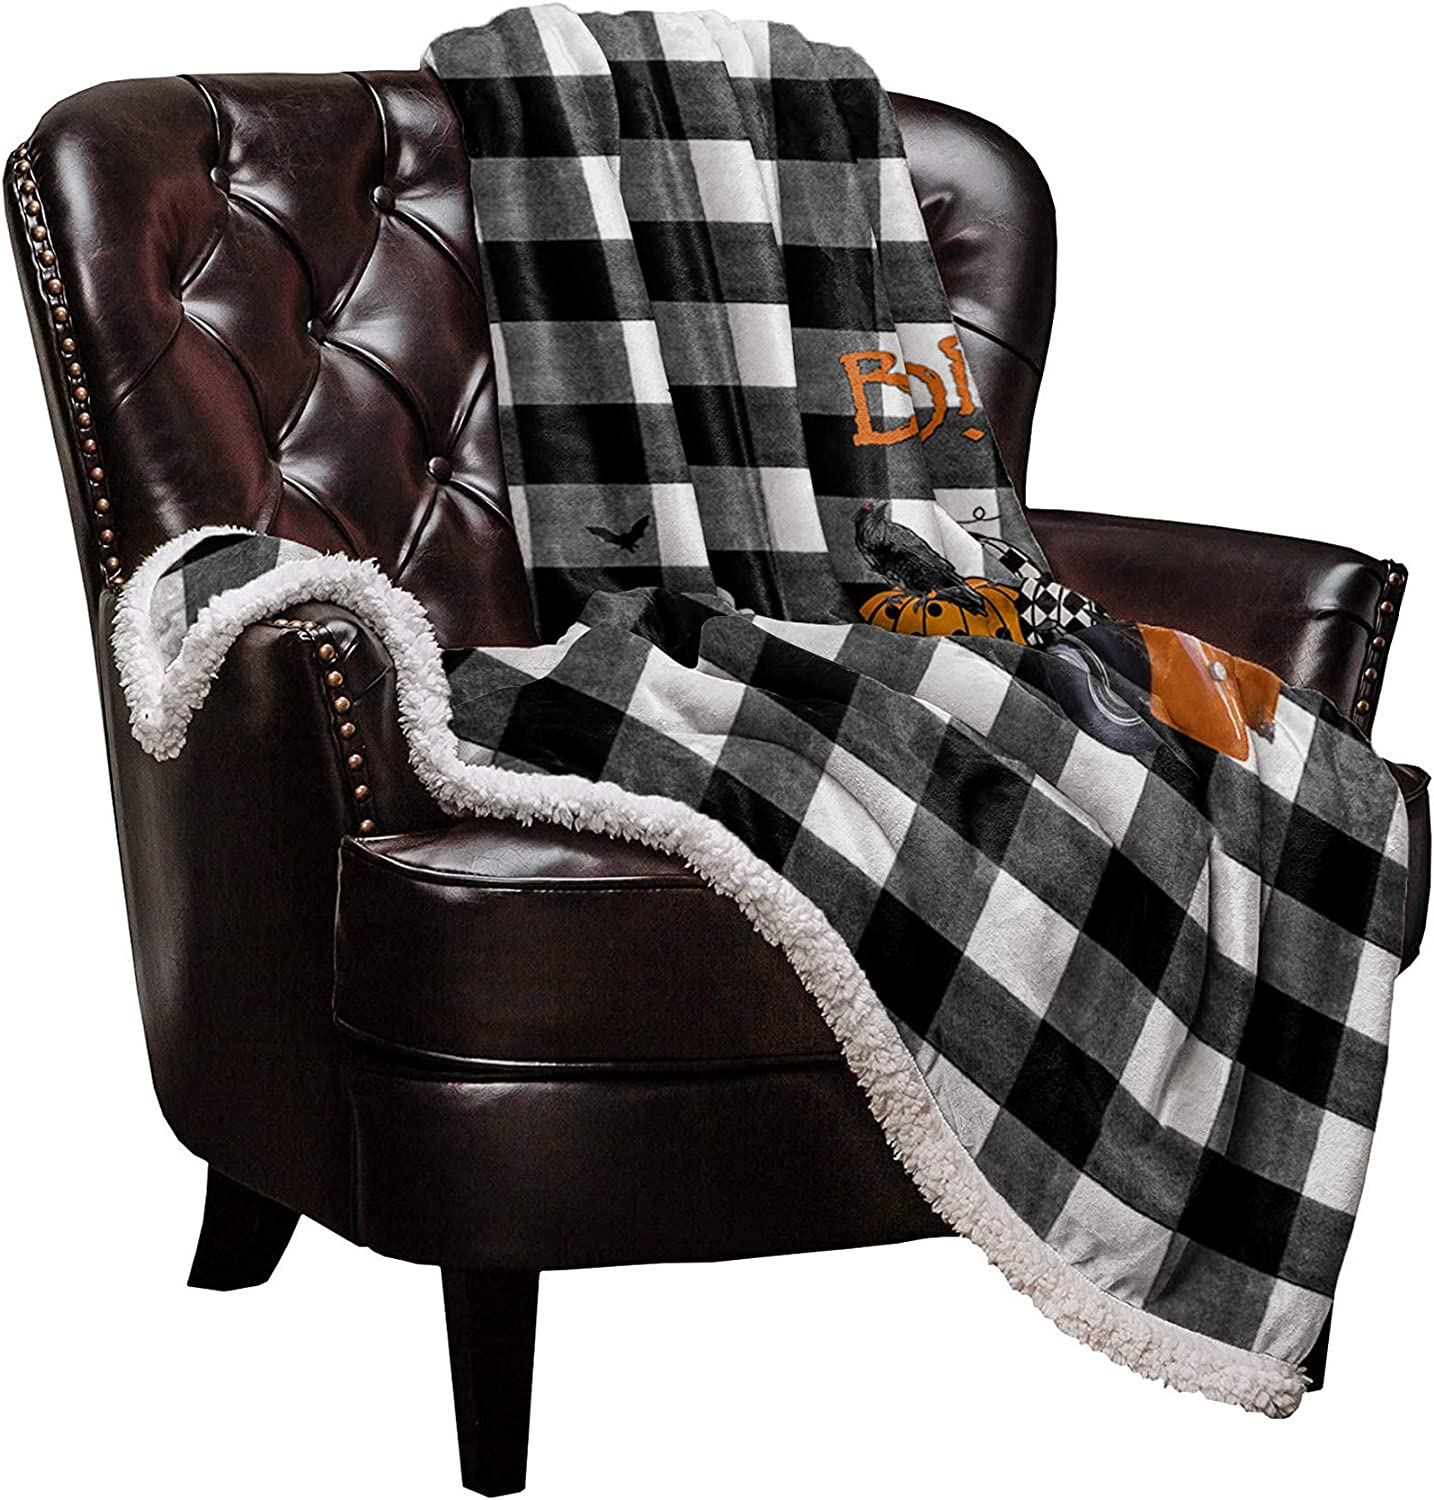 Sherpa Fleece Special price Throw Blanket Cozy Soft Warm Blankets Hallowee ! Super beauty product restock quality top! Bed